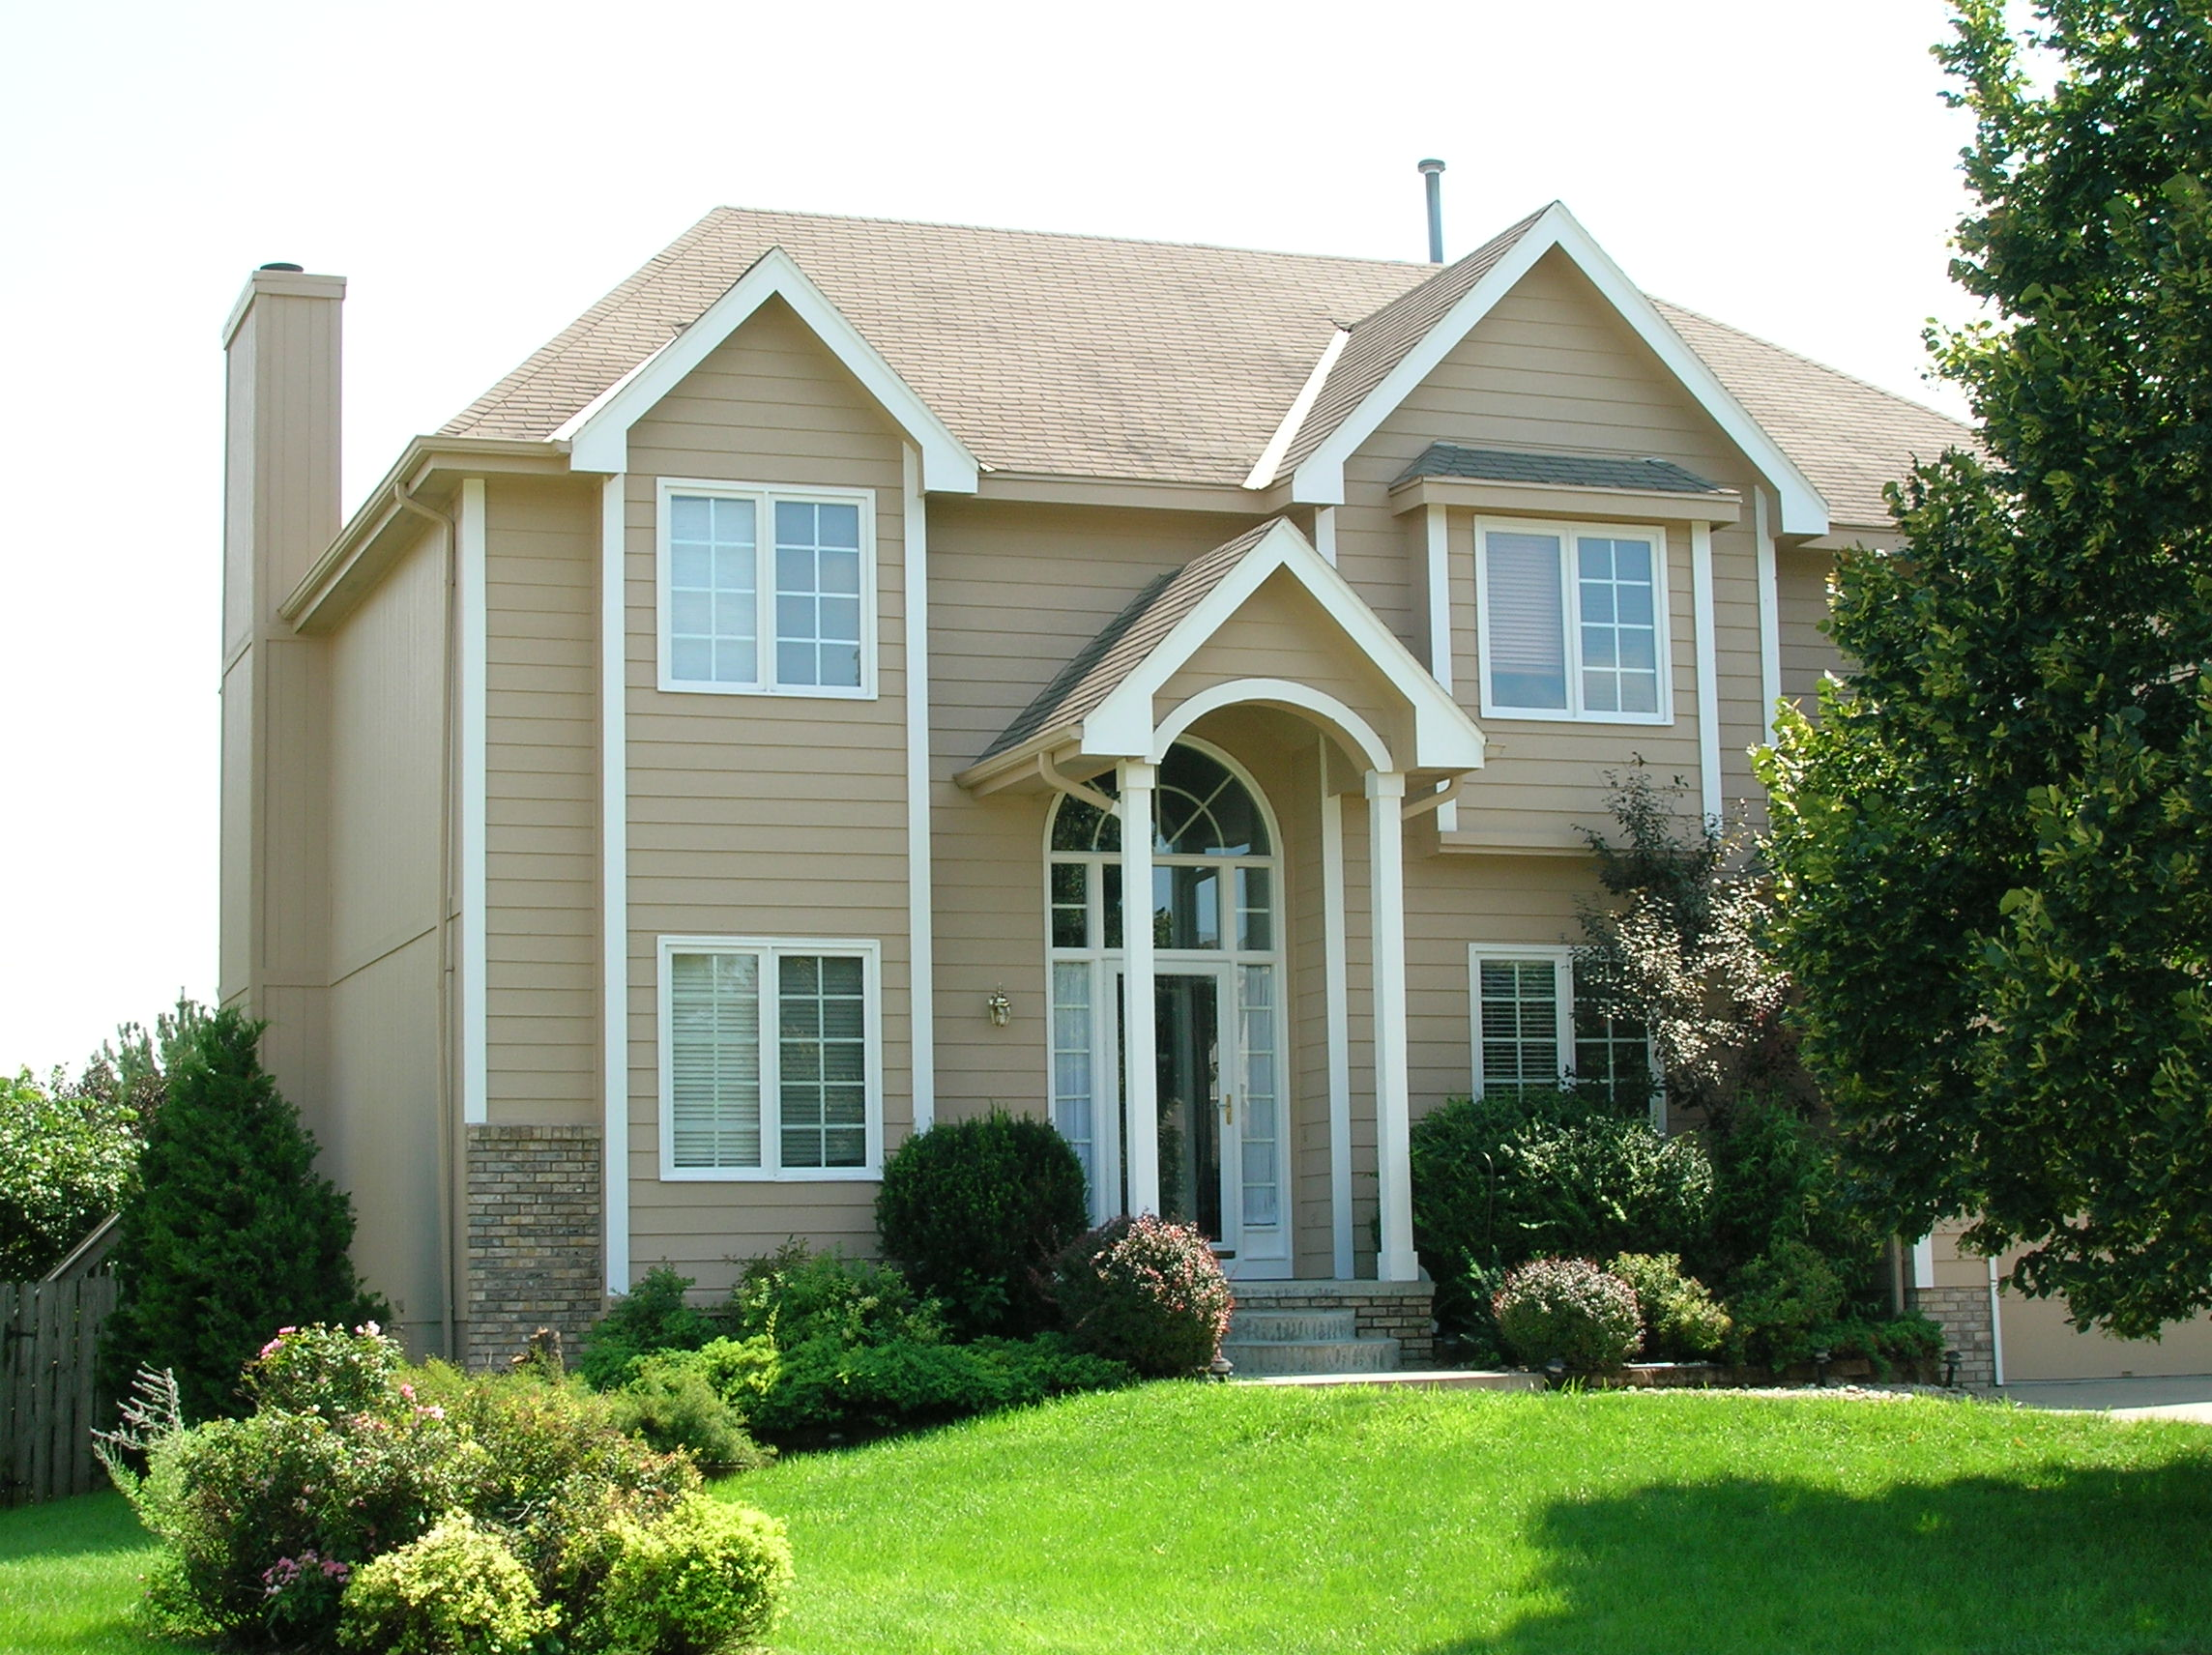 House Exterior Painting After